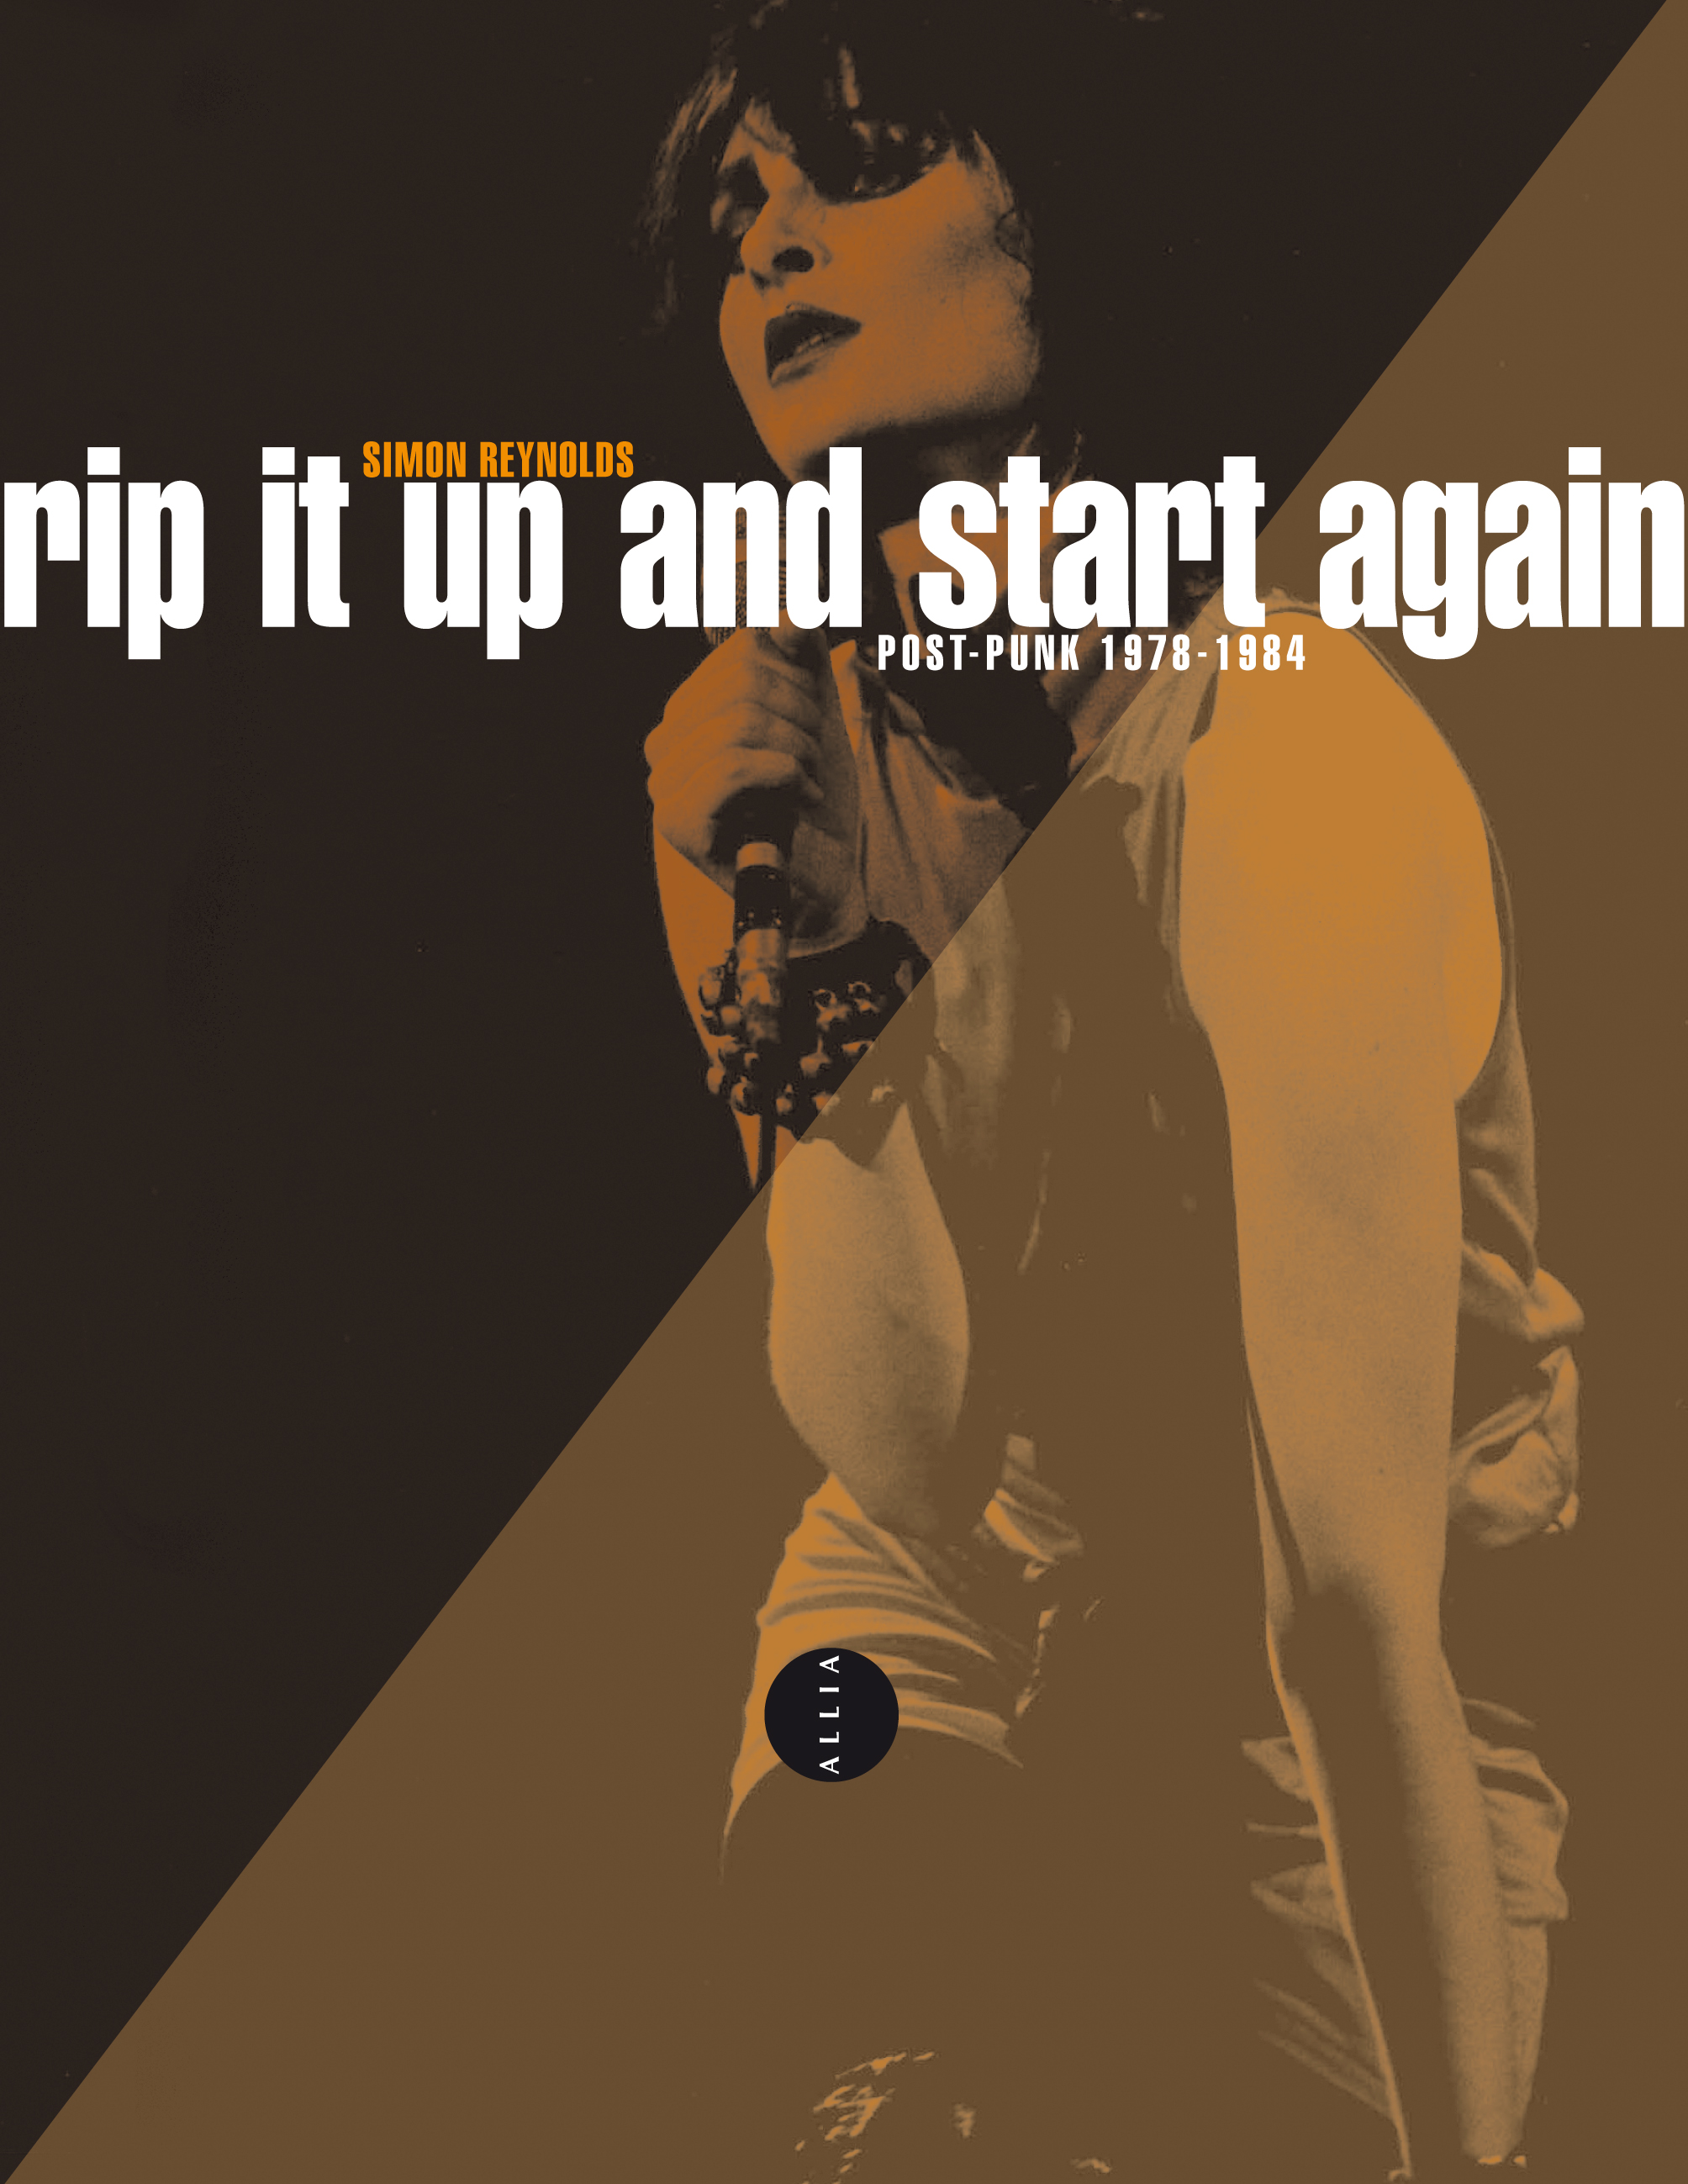 PAPIER A MUSIQUE : RIP IT UP AND START AGAIN